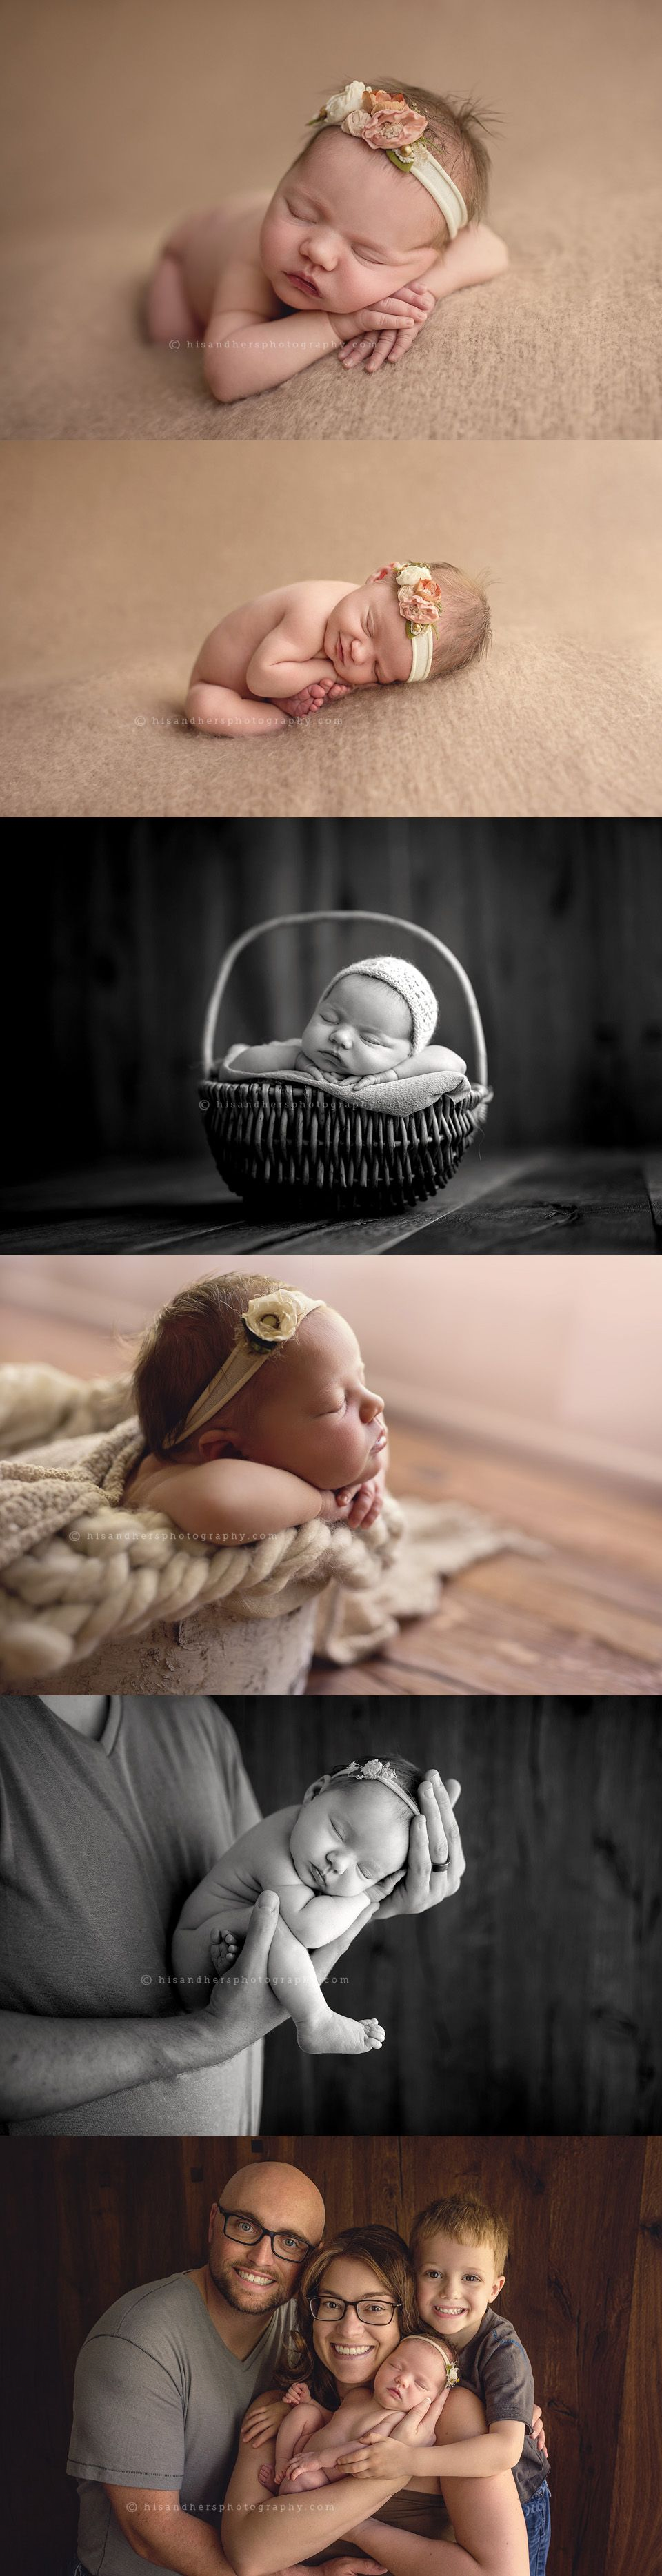 Newborn | Annabelle, 6 days new